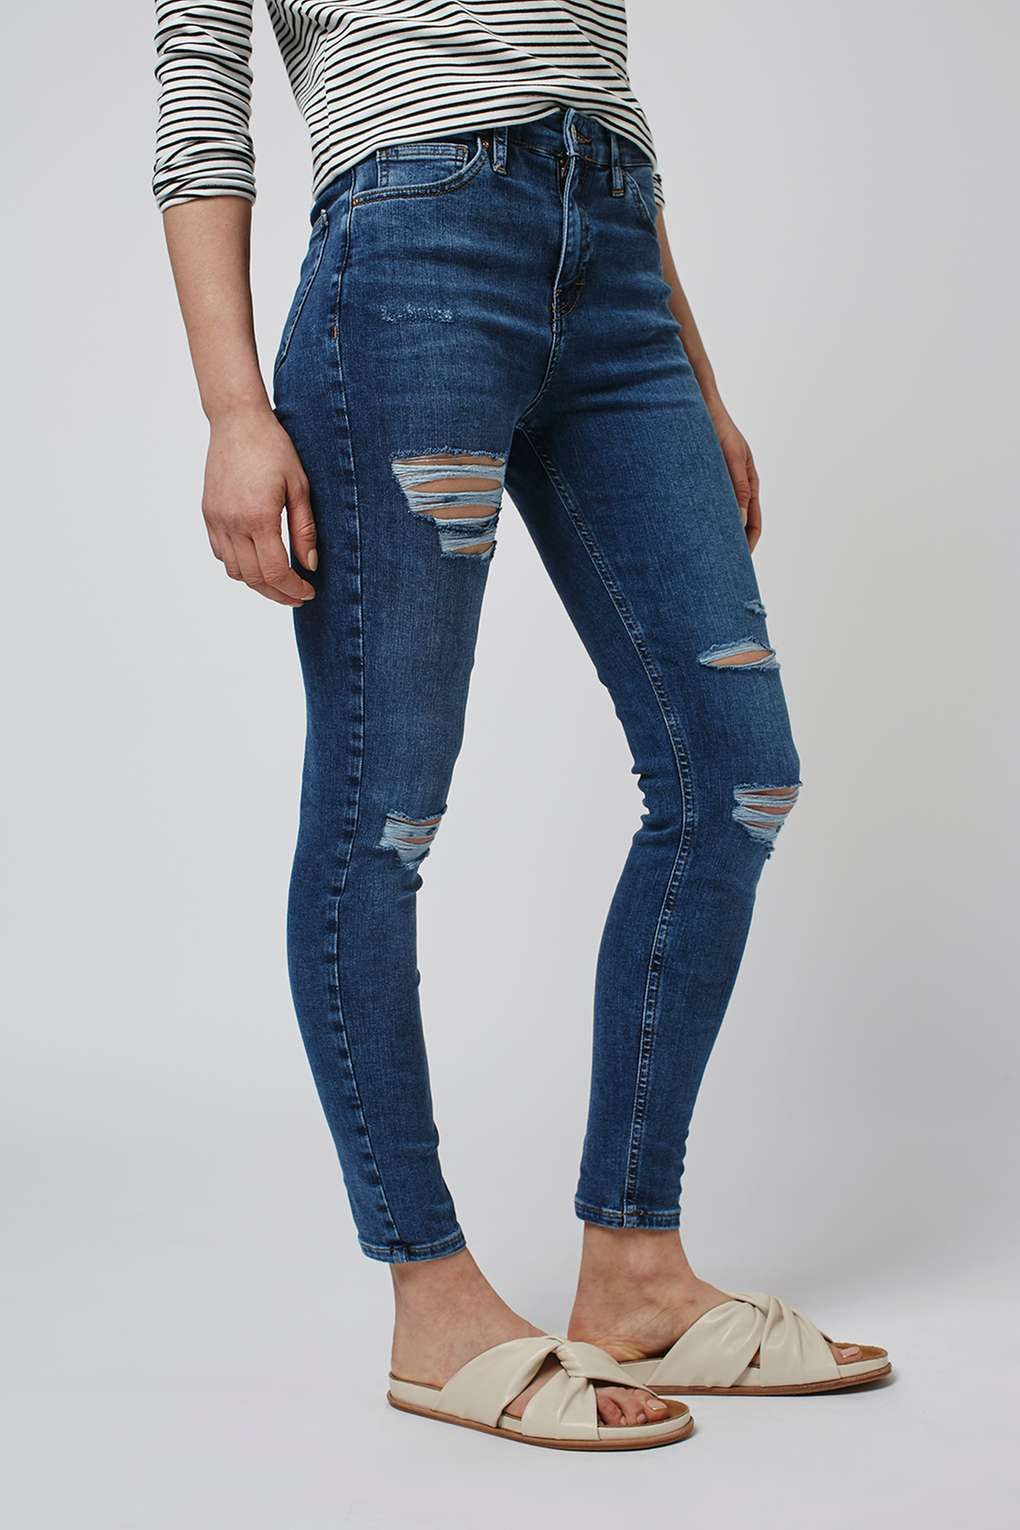 35a30456455 MOTO Super Rip Jamie Jeans - Topshop USA. Carousel Image 2 Ripped Knees, Ripped  Skinny ...